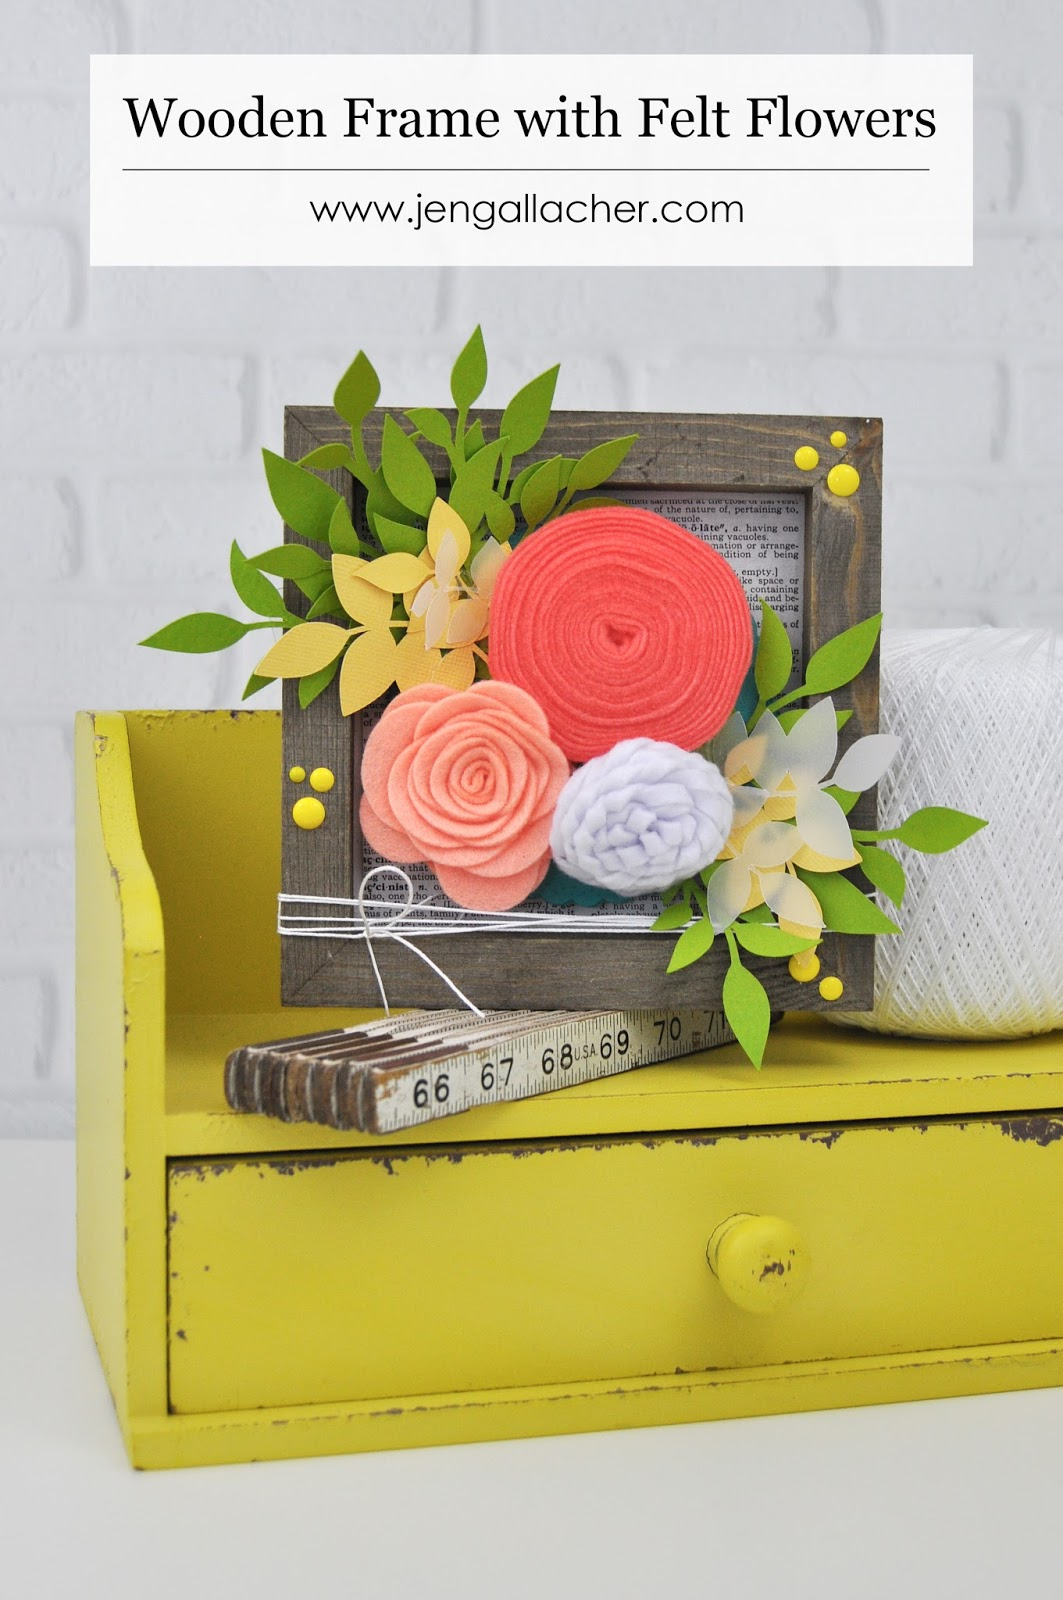 "How to add felt flowers to a wooden frame. Jillibean Soup ""Mix the Media"" frame and felt flowers. Wooden frame and felt flower tutorial with Jen Gallacher. #jillibeansoup #woodenframediy #feltflowers #jengallacher #papercrafts"